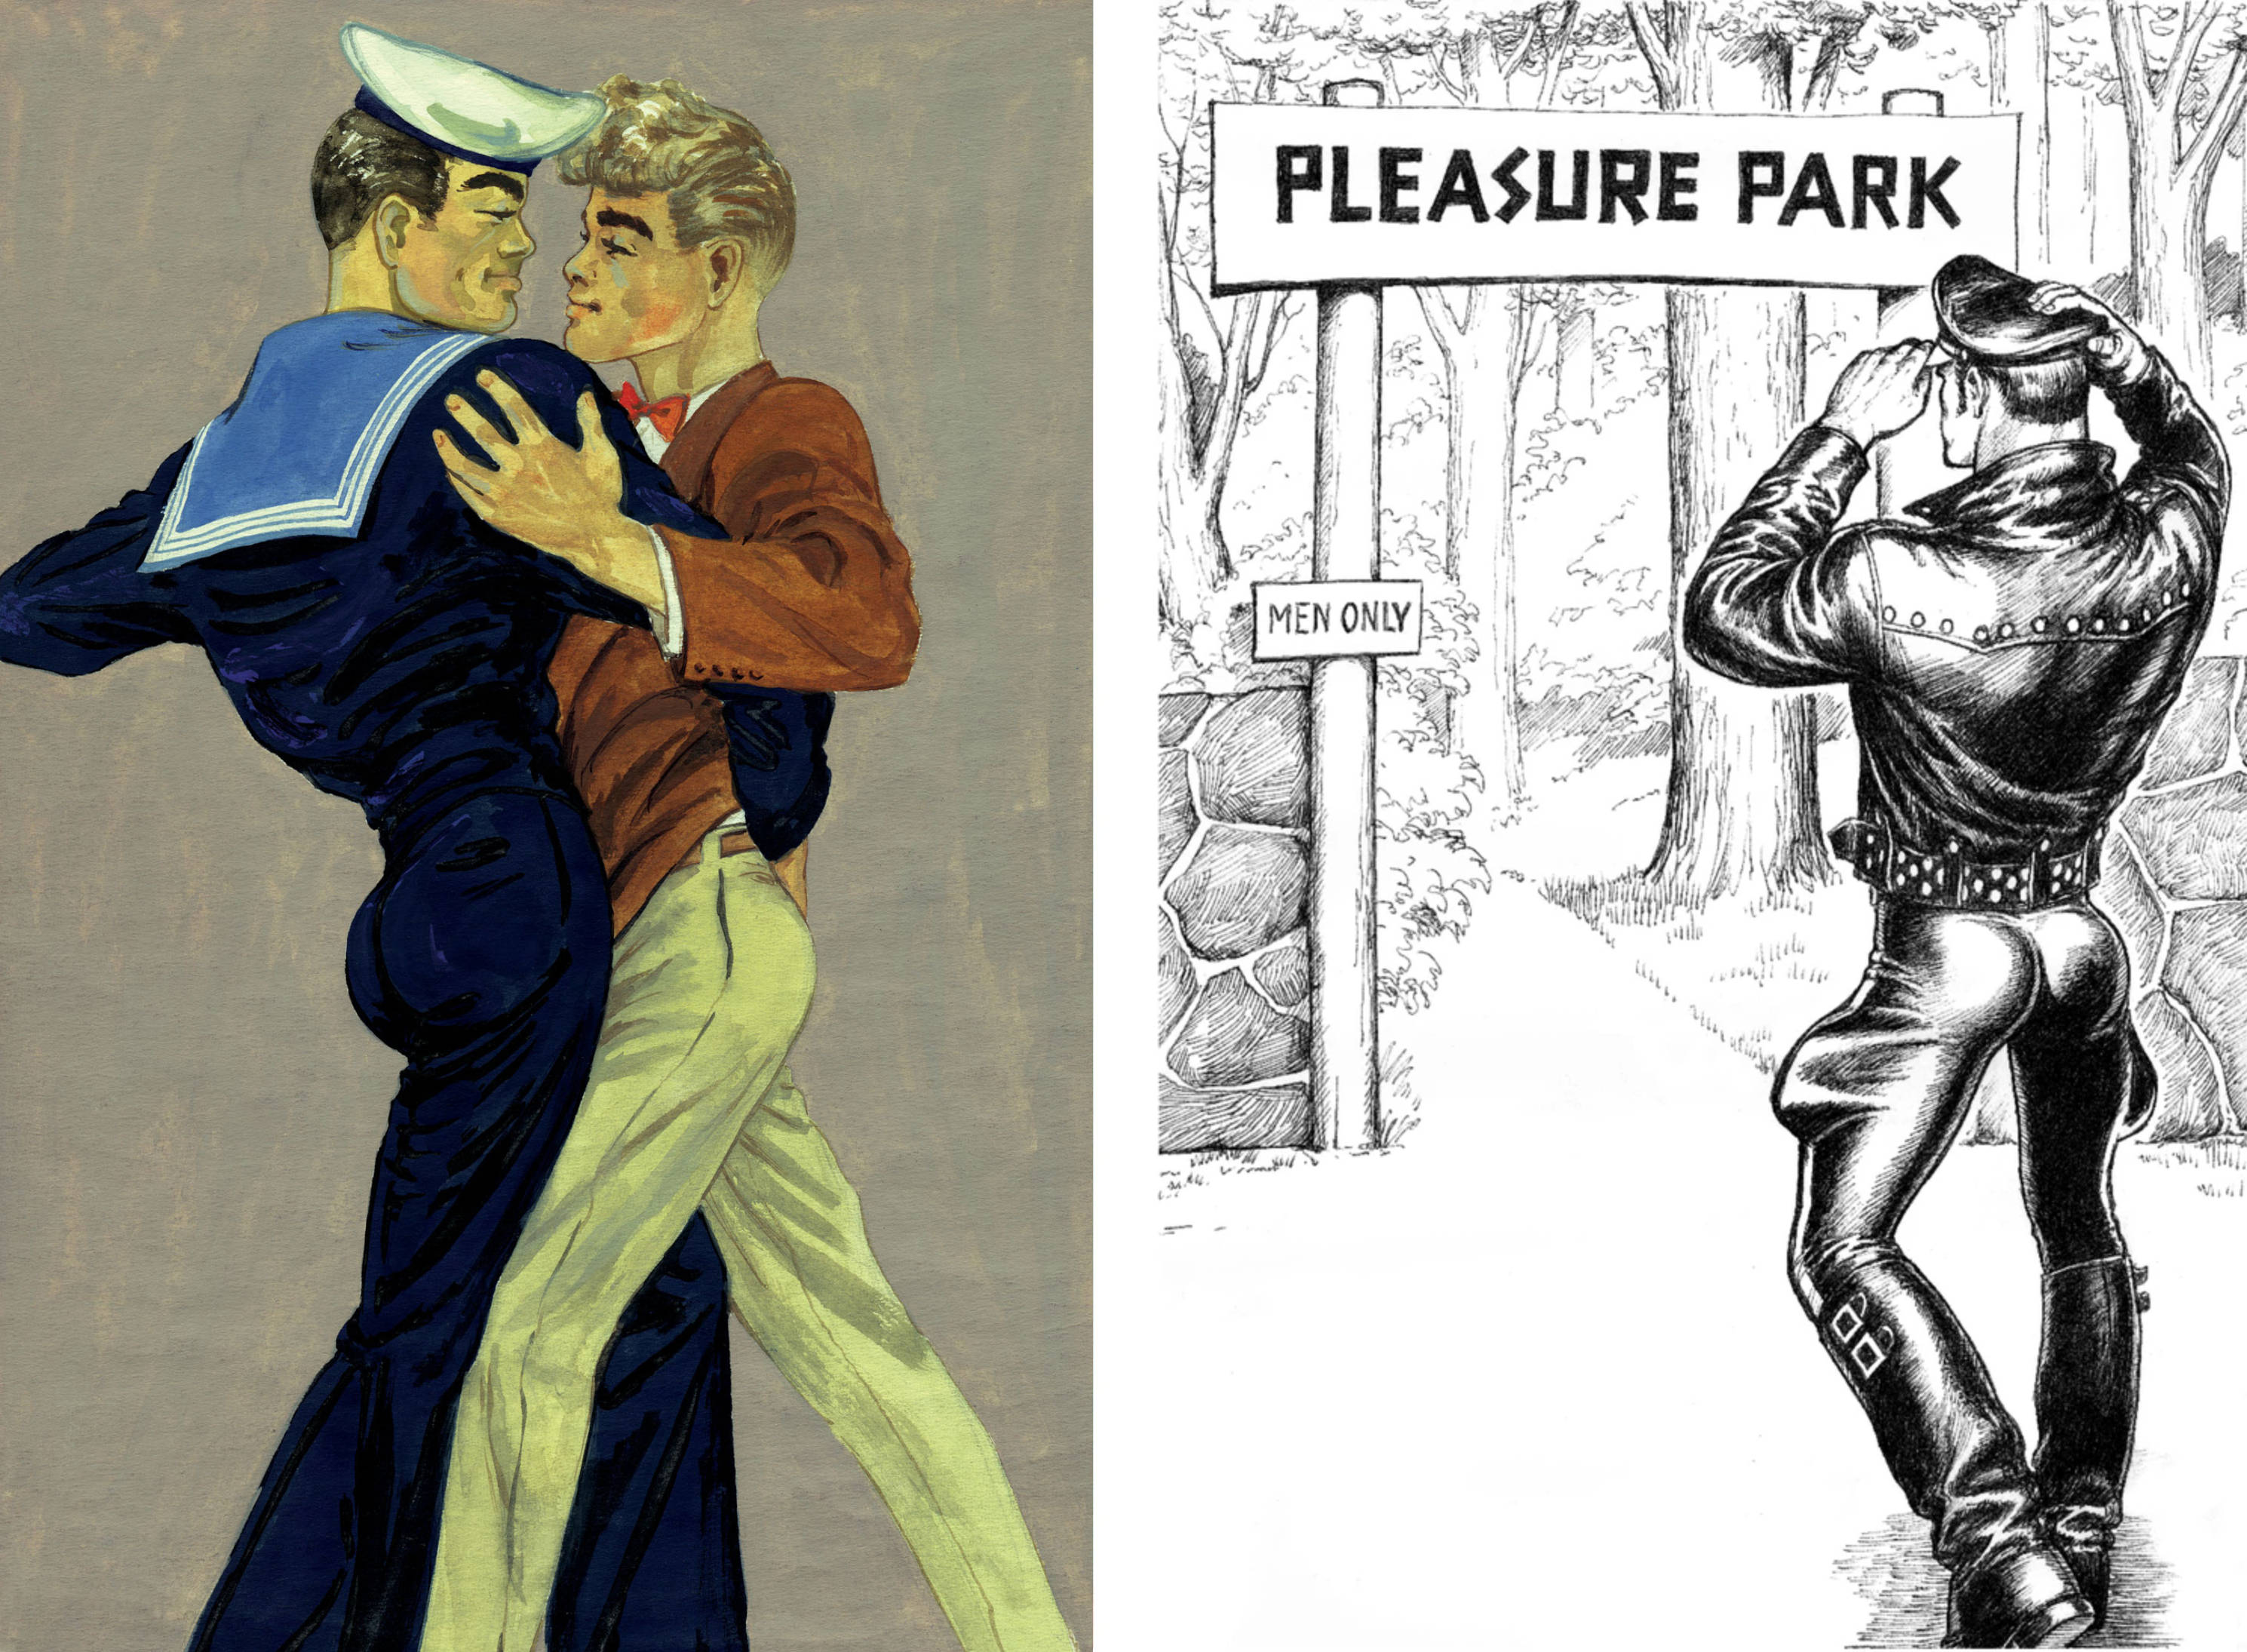 Touko Valio Laaksonen (8 May 1920 – 7 November 1991), best known by his pseudonym Tom of Finland, was a Finnish artist known for his stylized highly masculinized homoerotic art, and for his influence on late twentieth century gay culture.